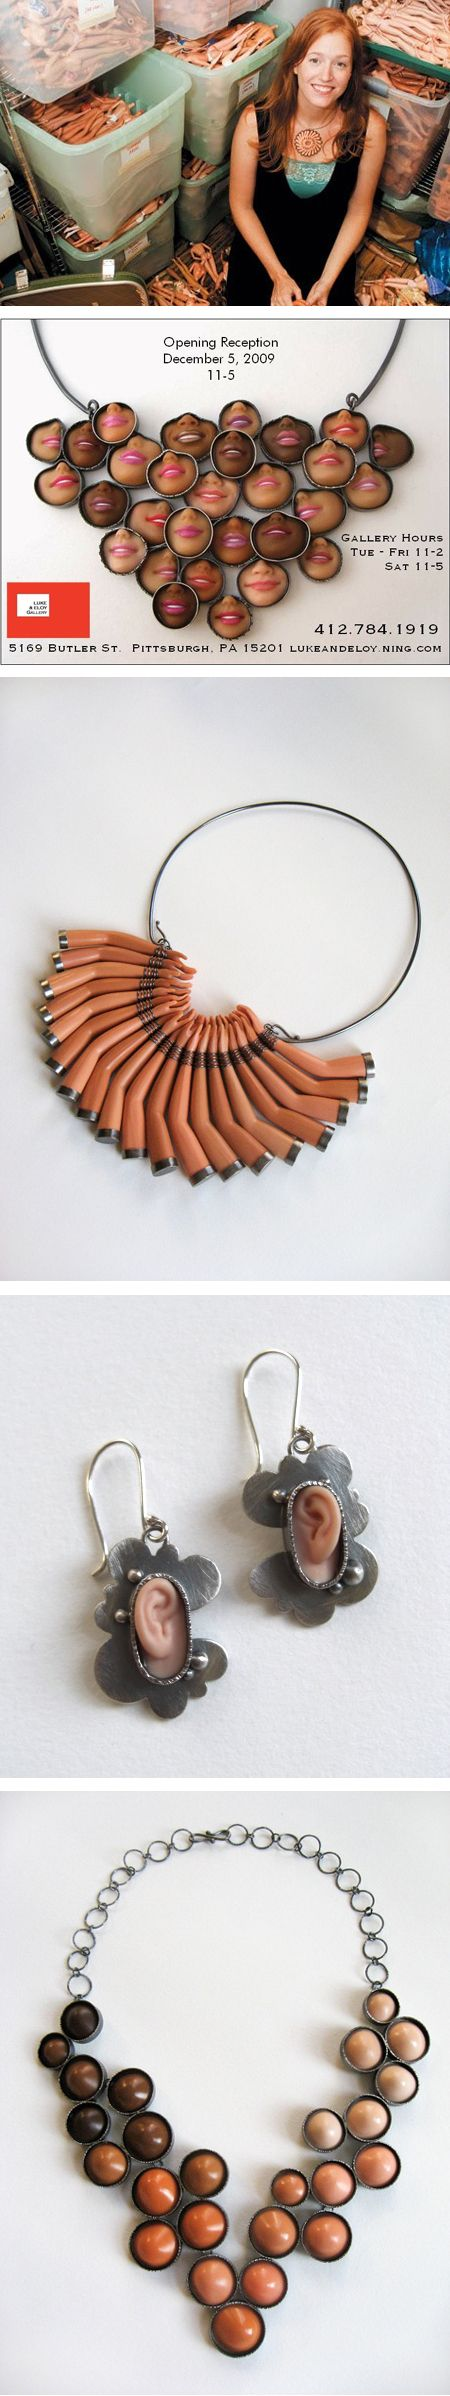 Jewelry made of Barbie parts. Like a Barbie boob necklace?//the most bizarre pin ever!!!